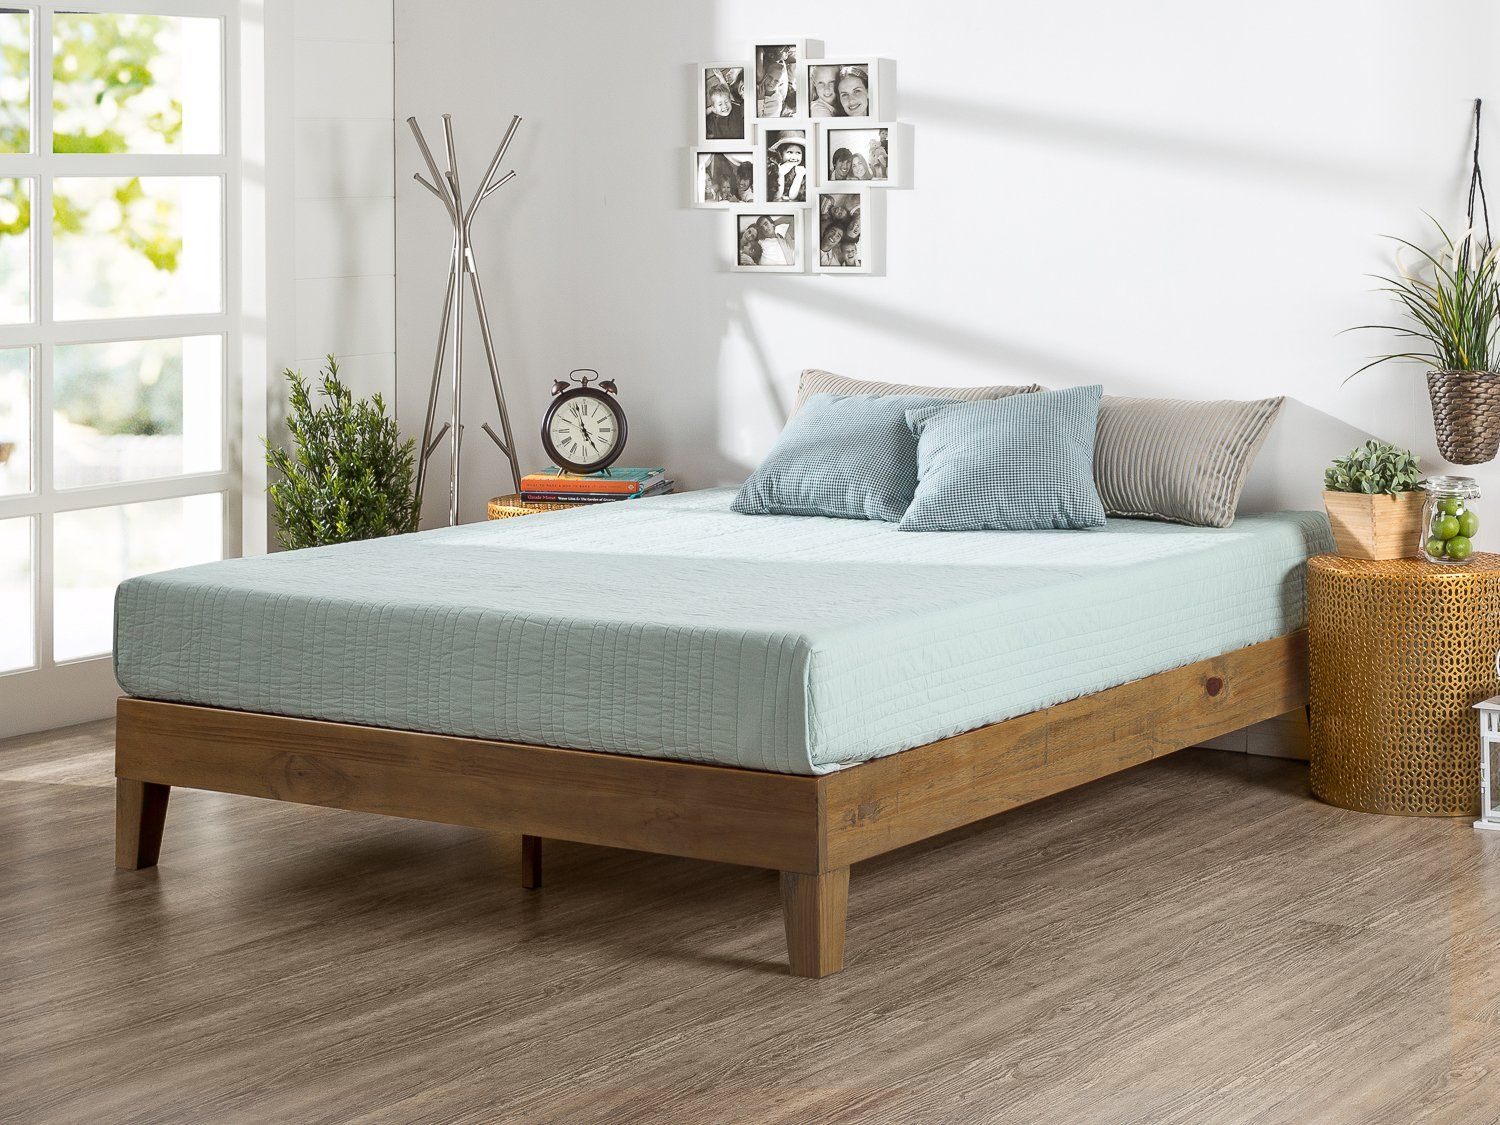 When You Rest It On The Floor Your Bed It Reaches 12 Inches High Solid Wood Platform Bed Wood Platform Bed Cool Beds